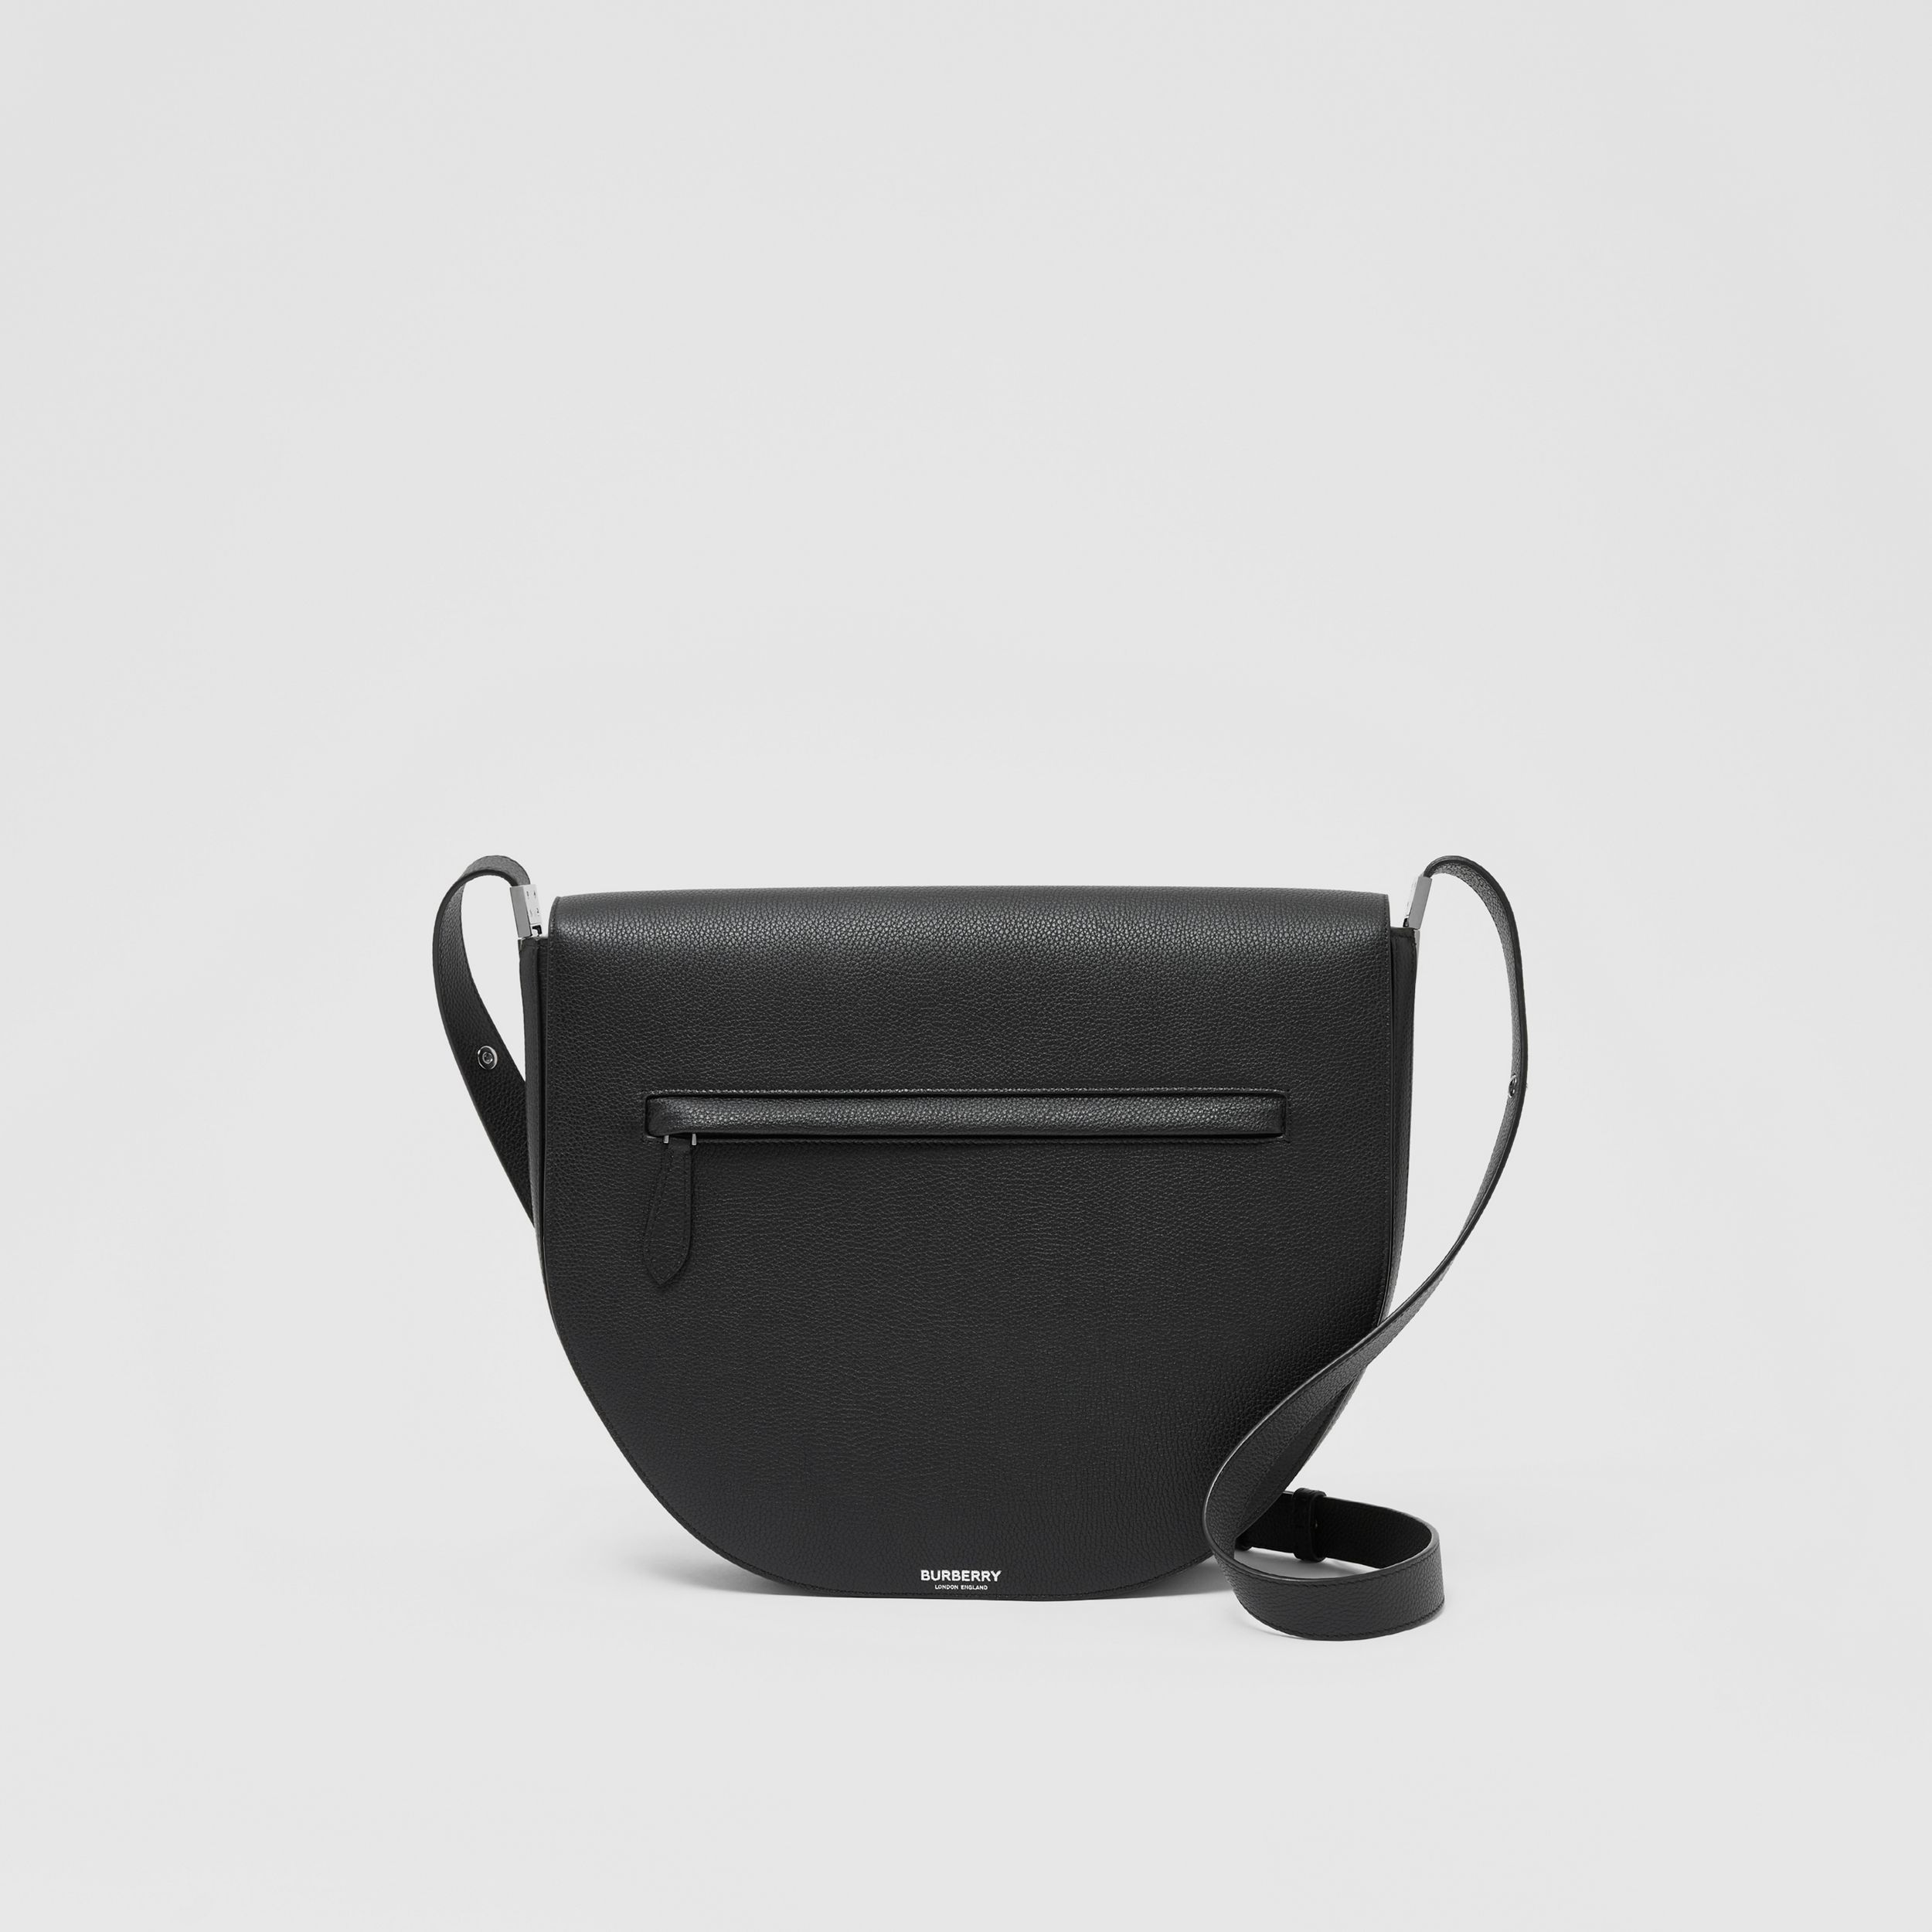 Leather Olympia Crossbody Bag in Black | Burberry - 1